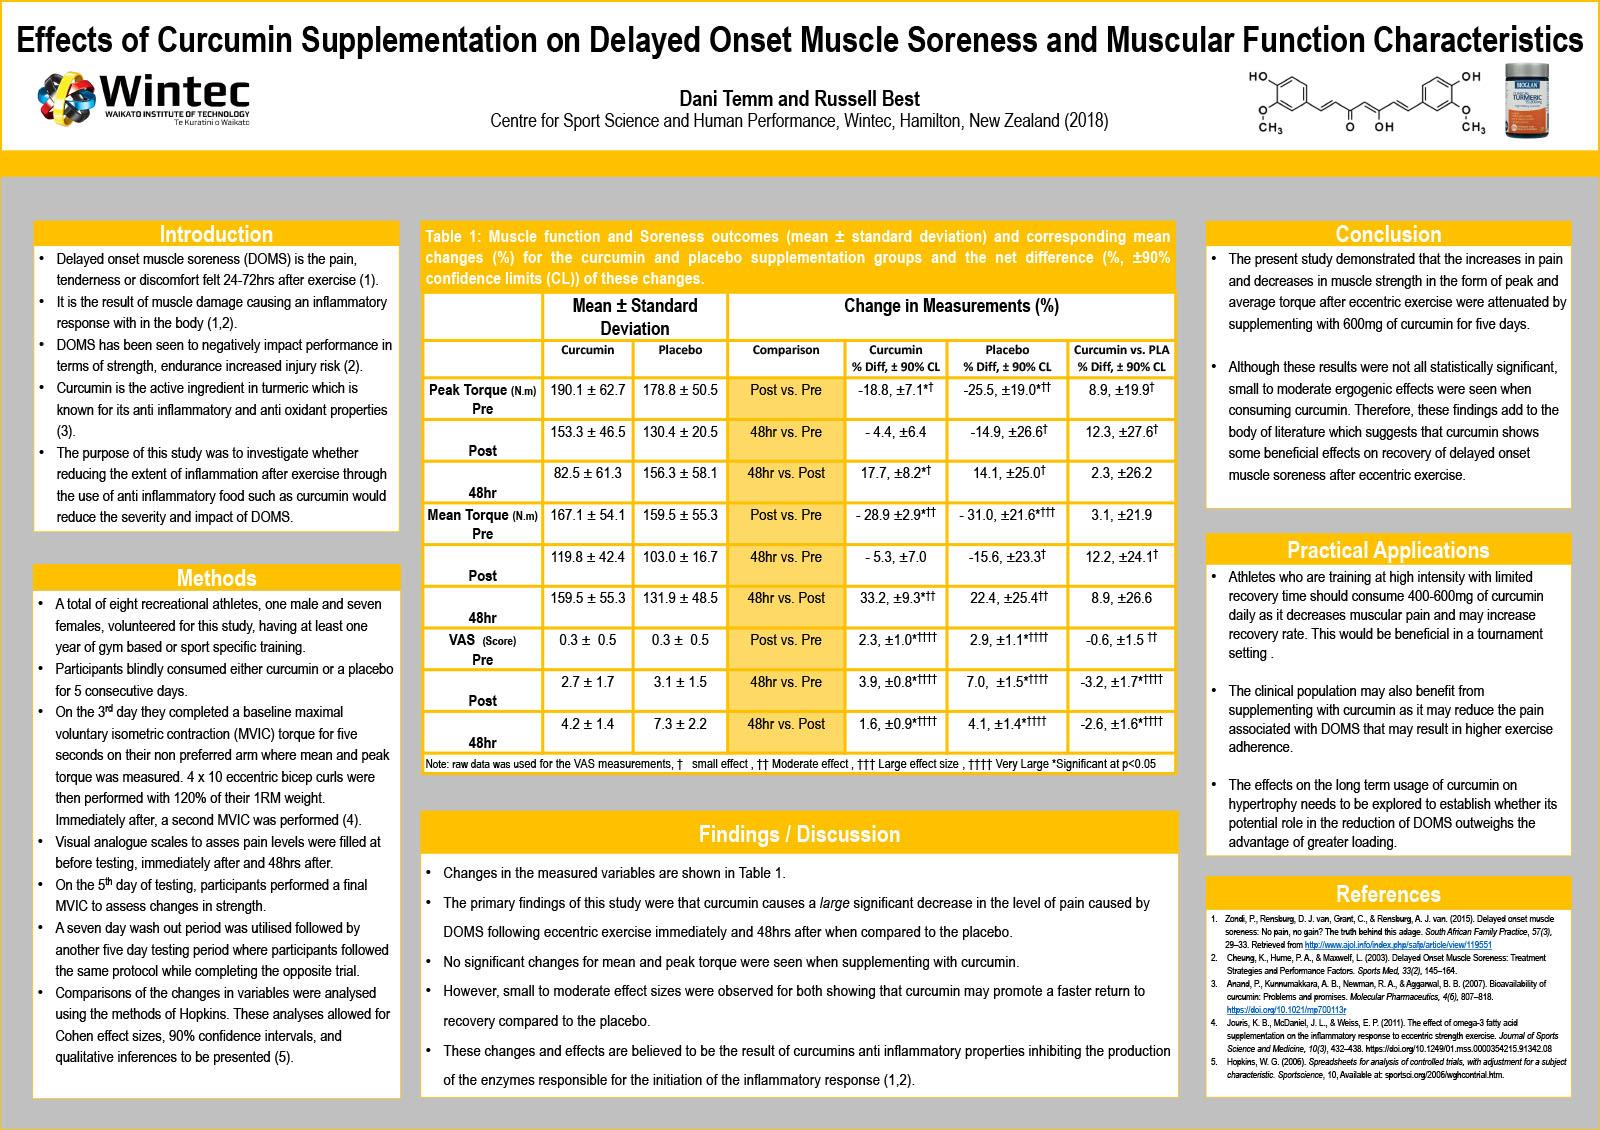 Effects of Curcumin Supplementation on Delayed Onset Muscle Soreness and Muscular Function Characteristics